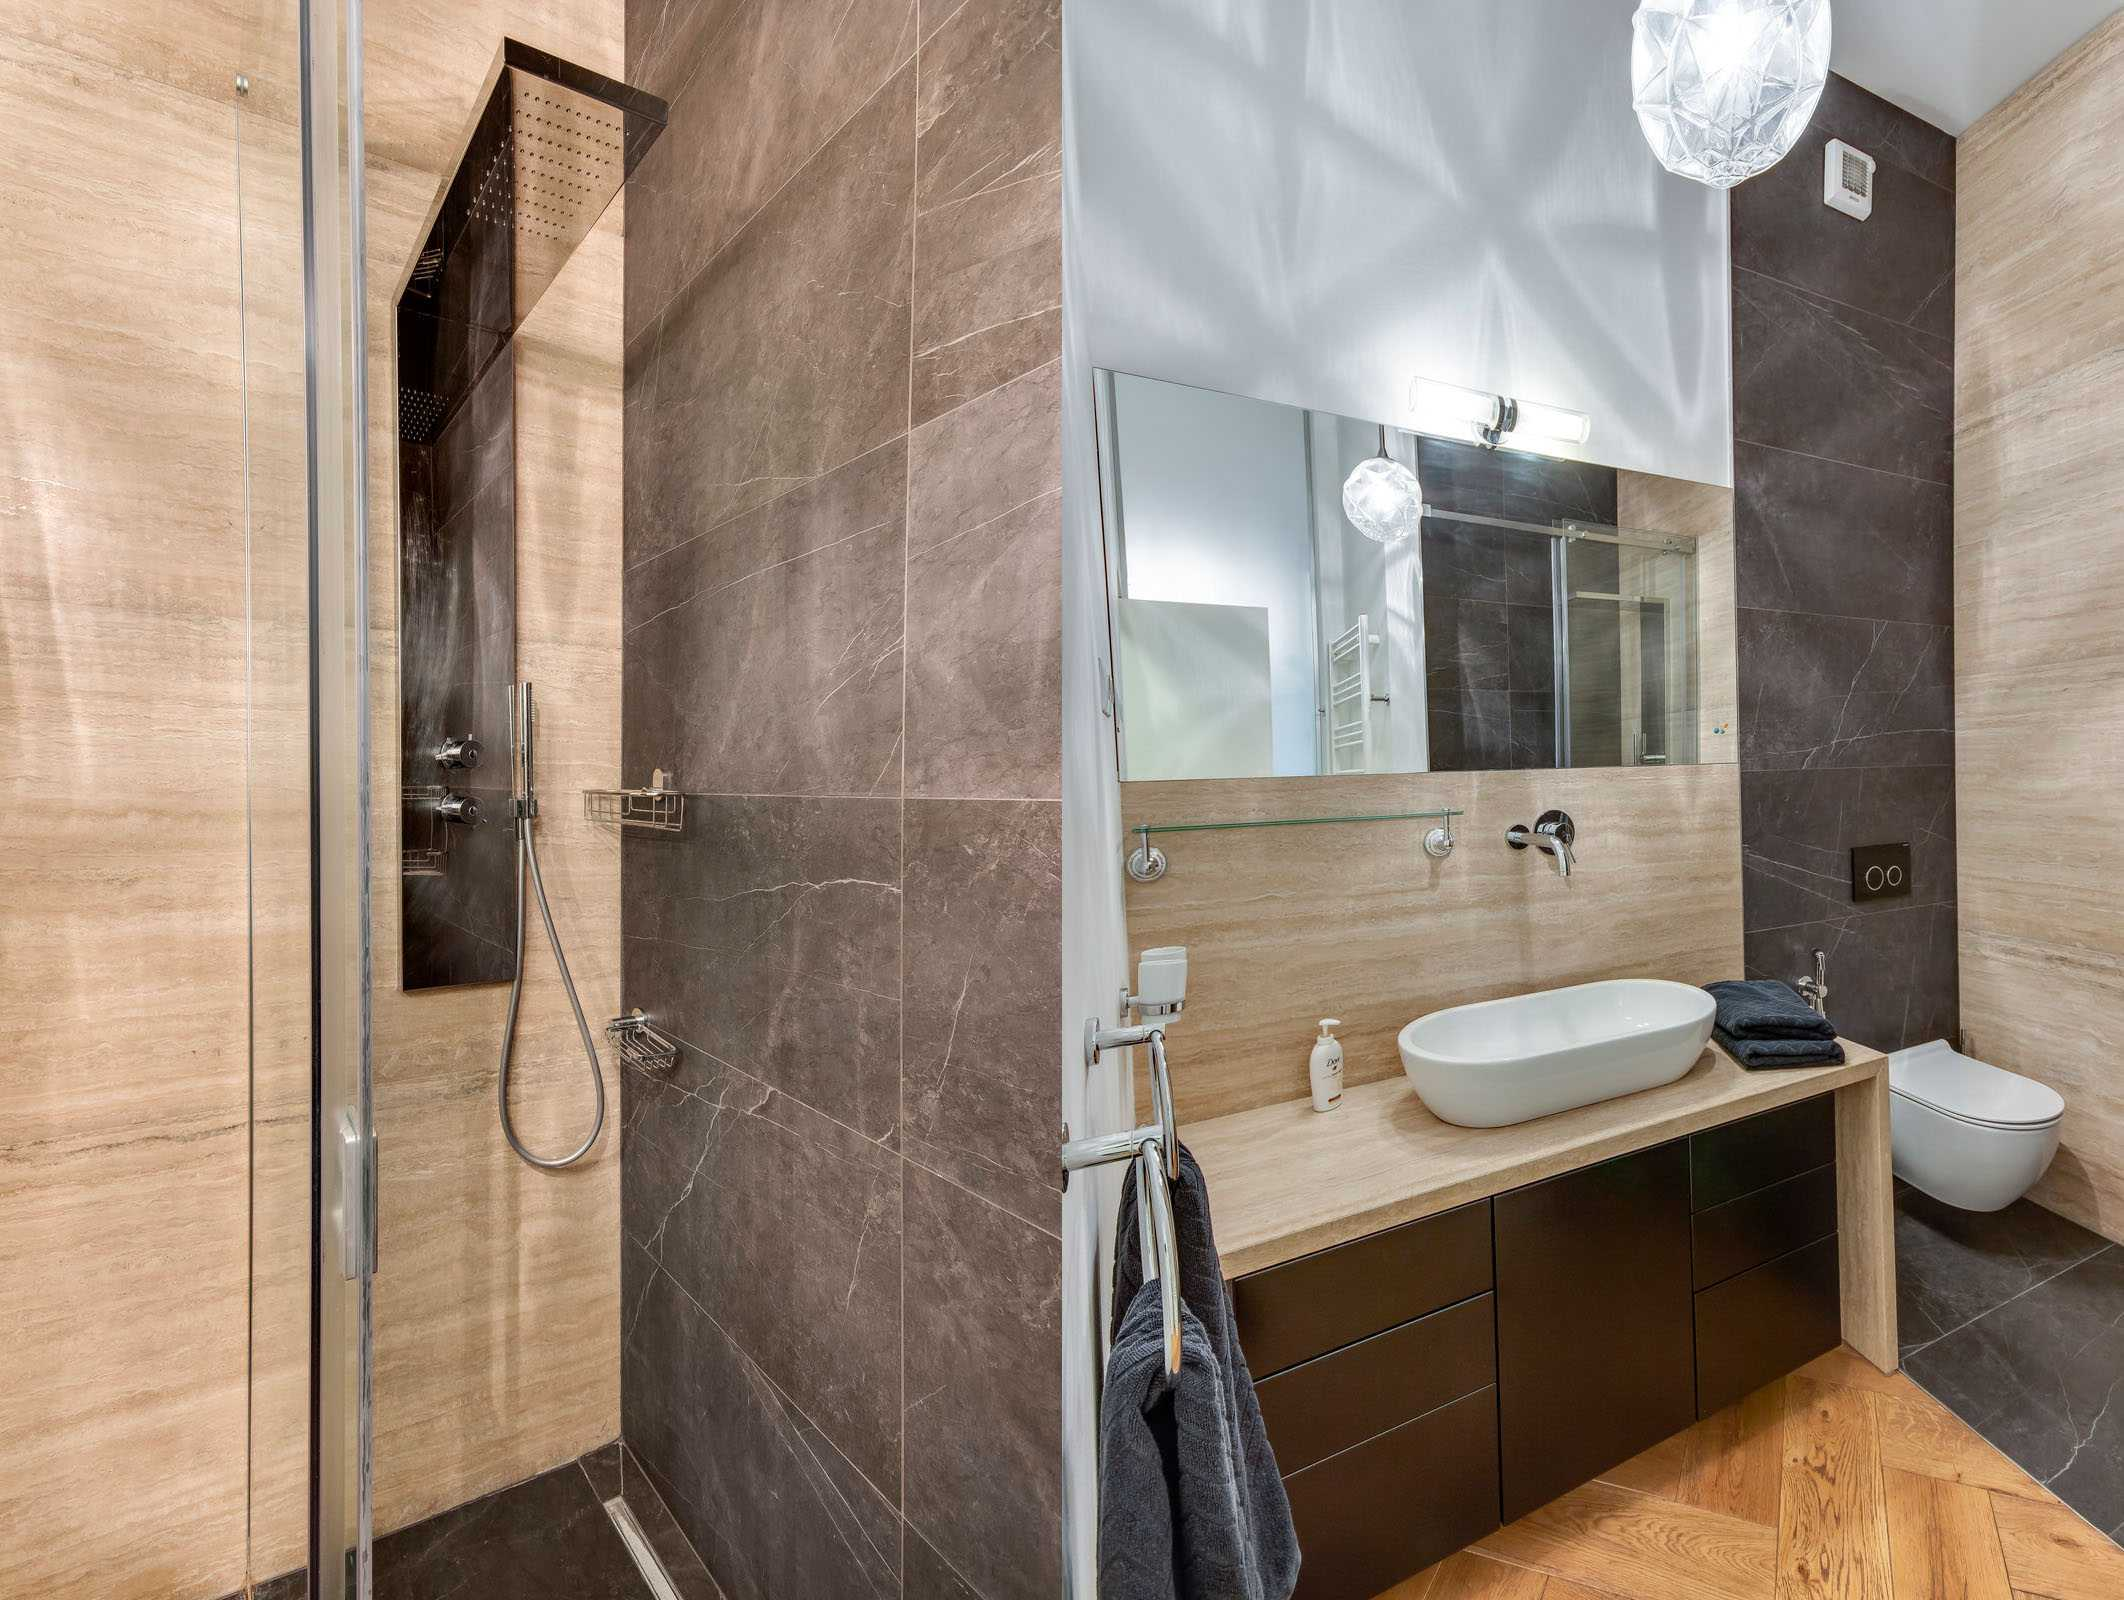 En-suit bathroom with a walk-in shower in the master bedroom.